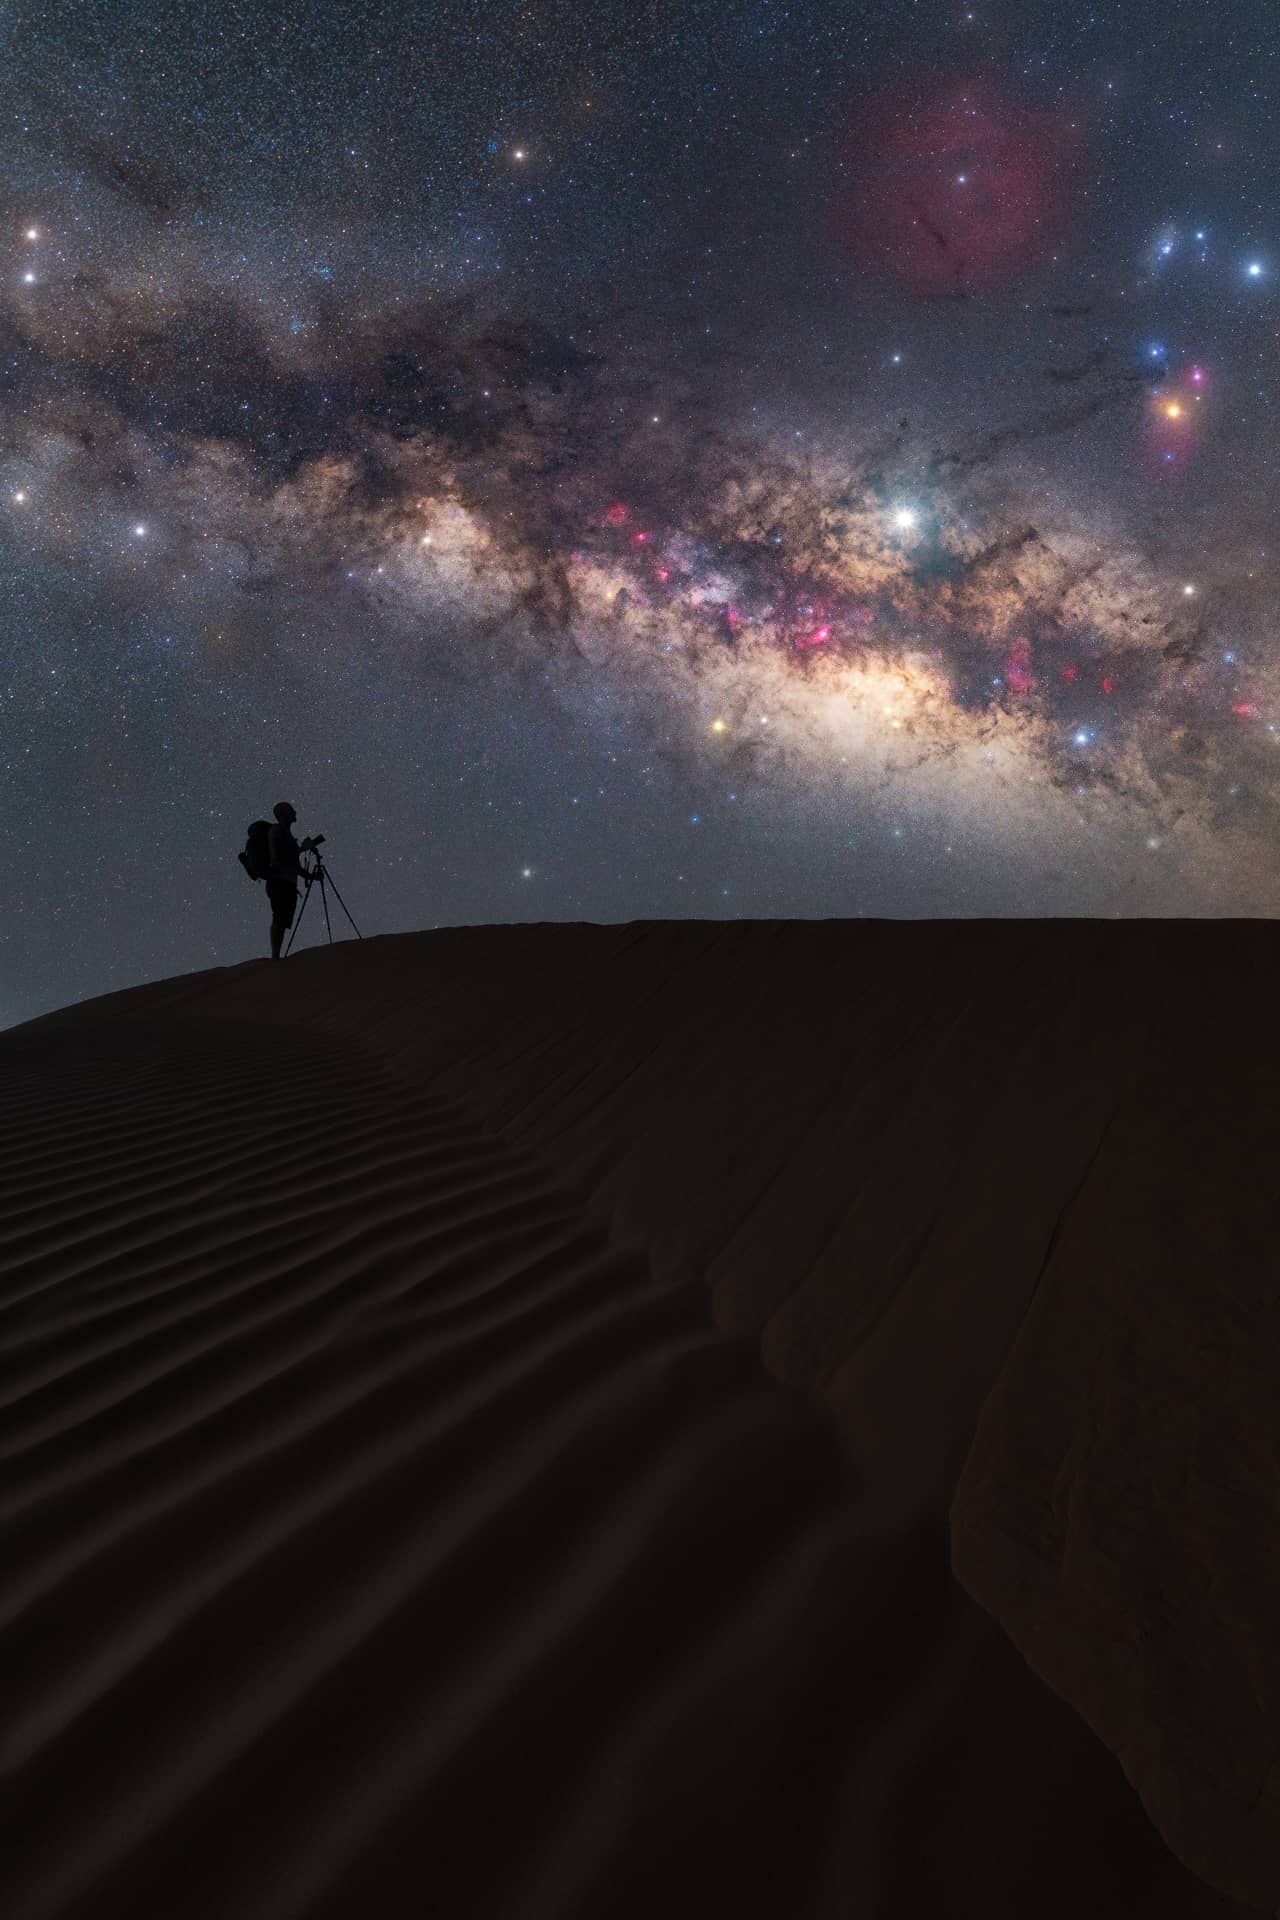 Where to see the Milky Way in the Sahara